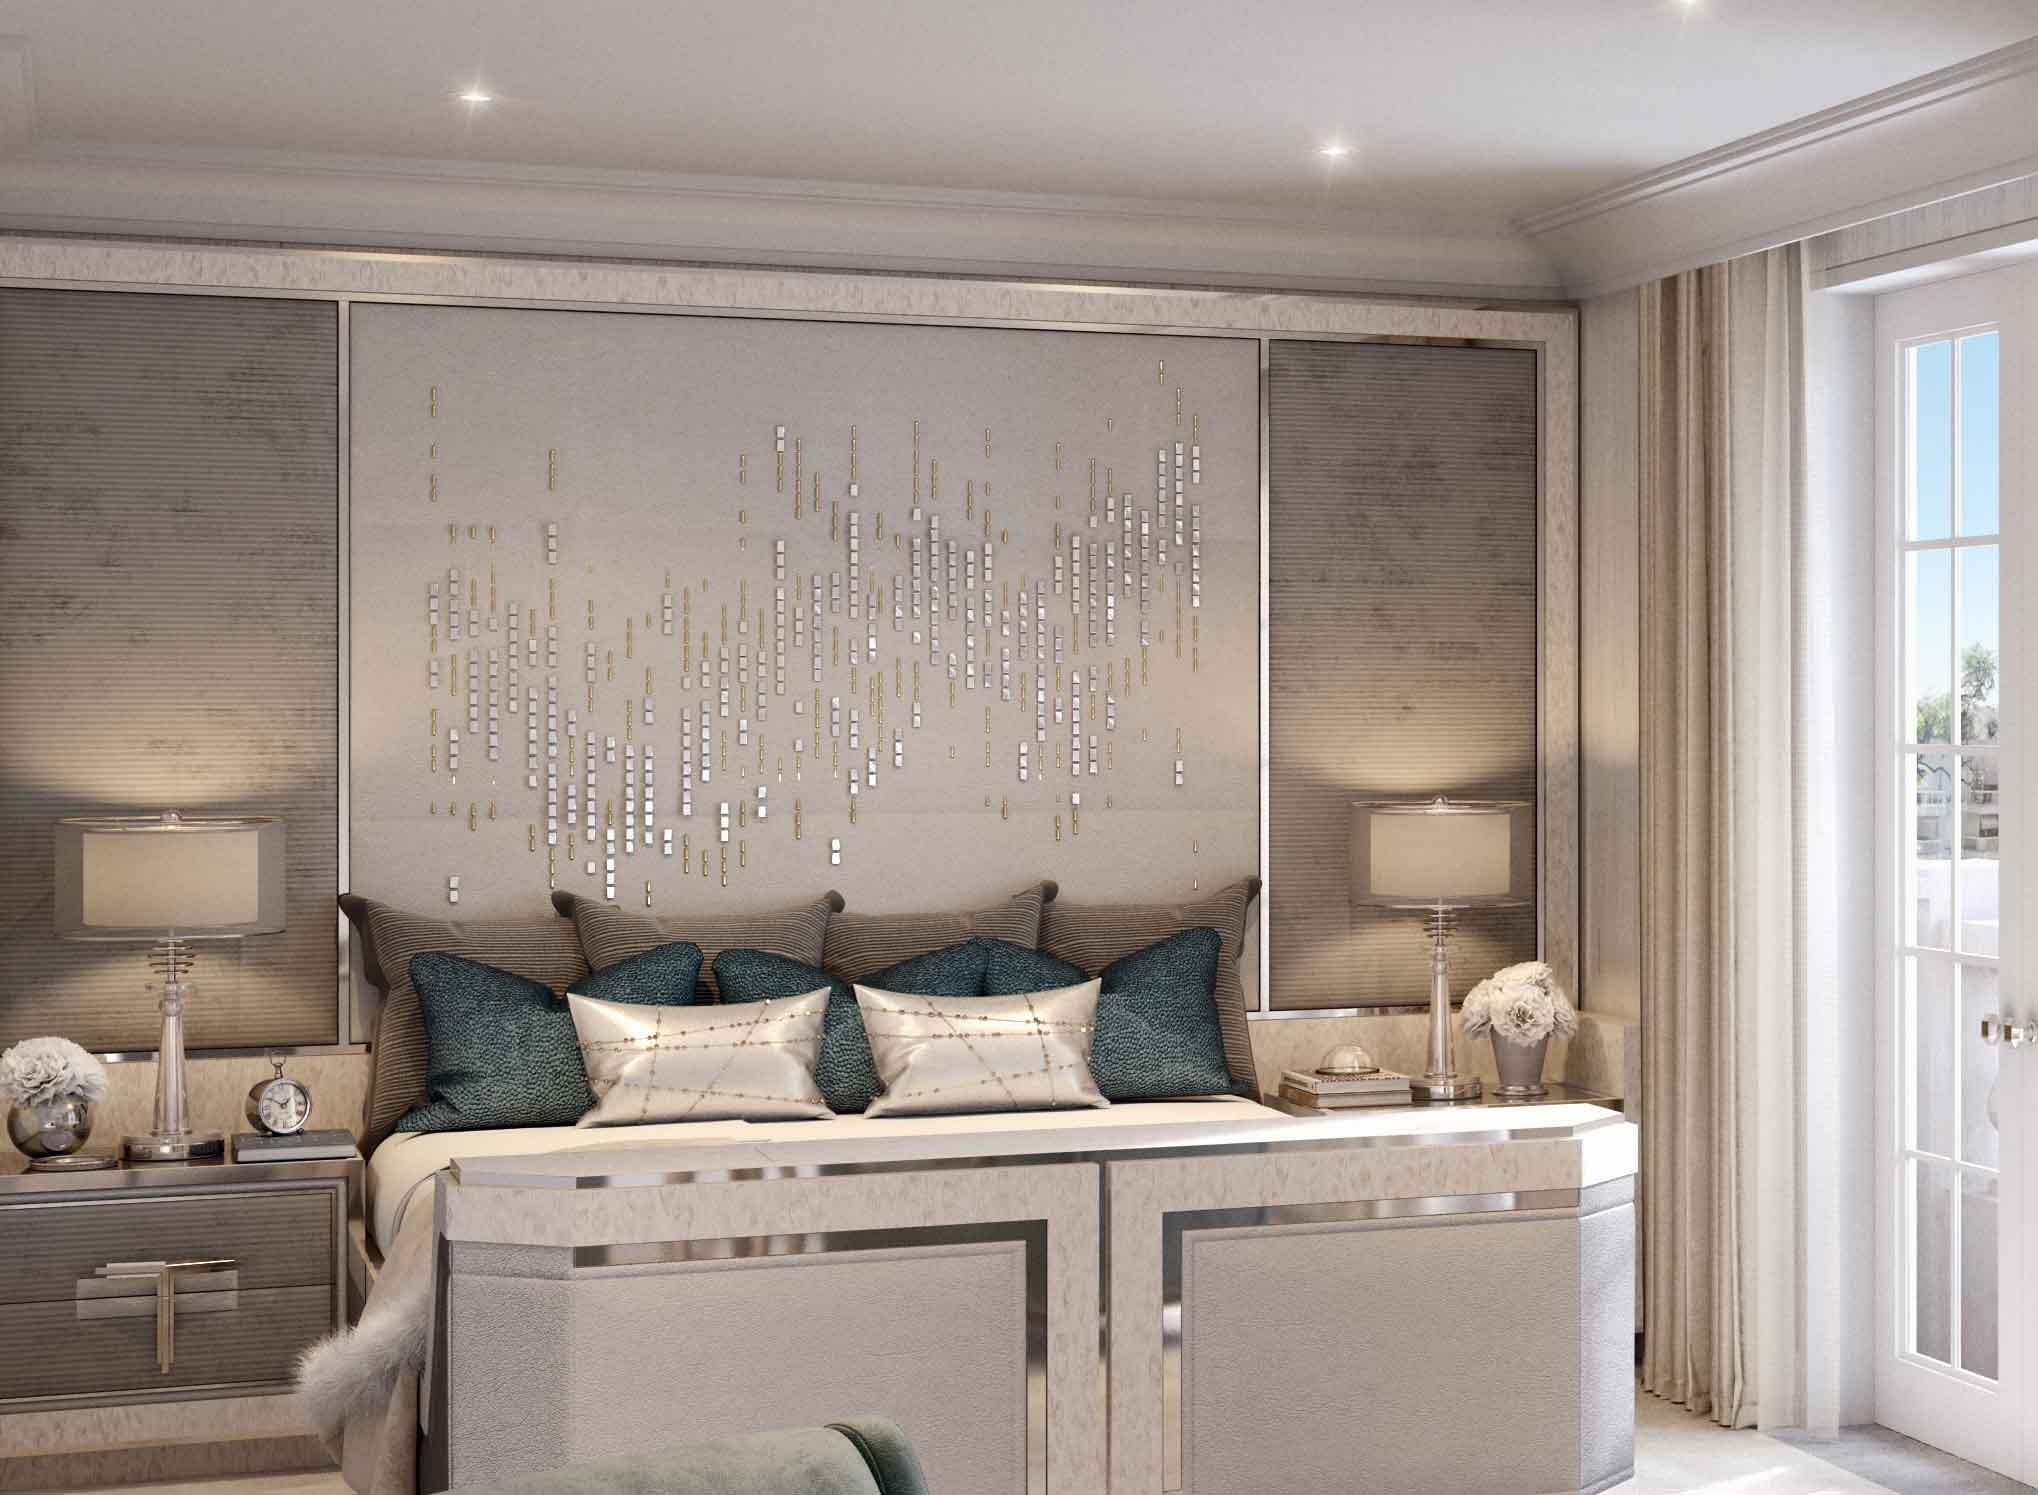 New Interior Design Of Bedroom Impressive Know More About New The Interior Design Styles At Httpwww Design Inspiration